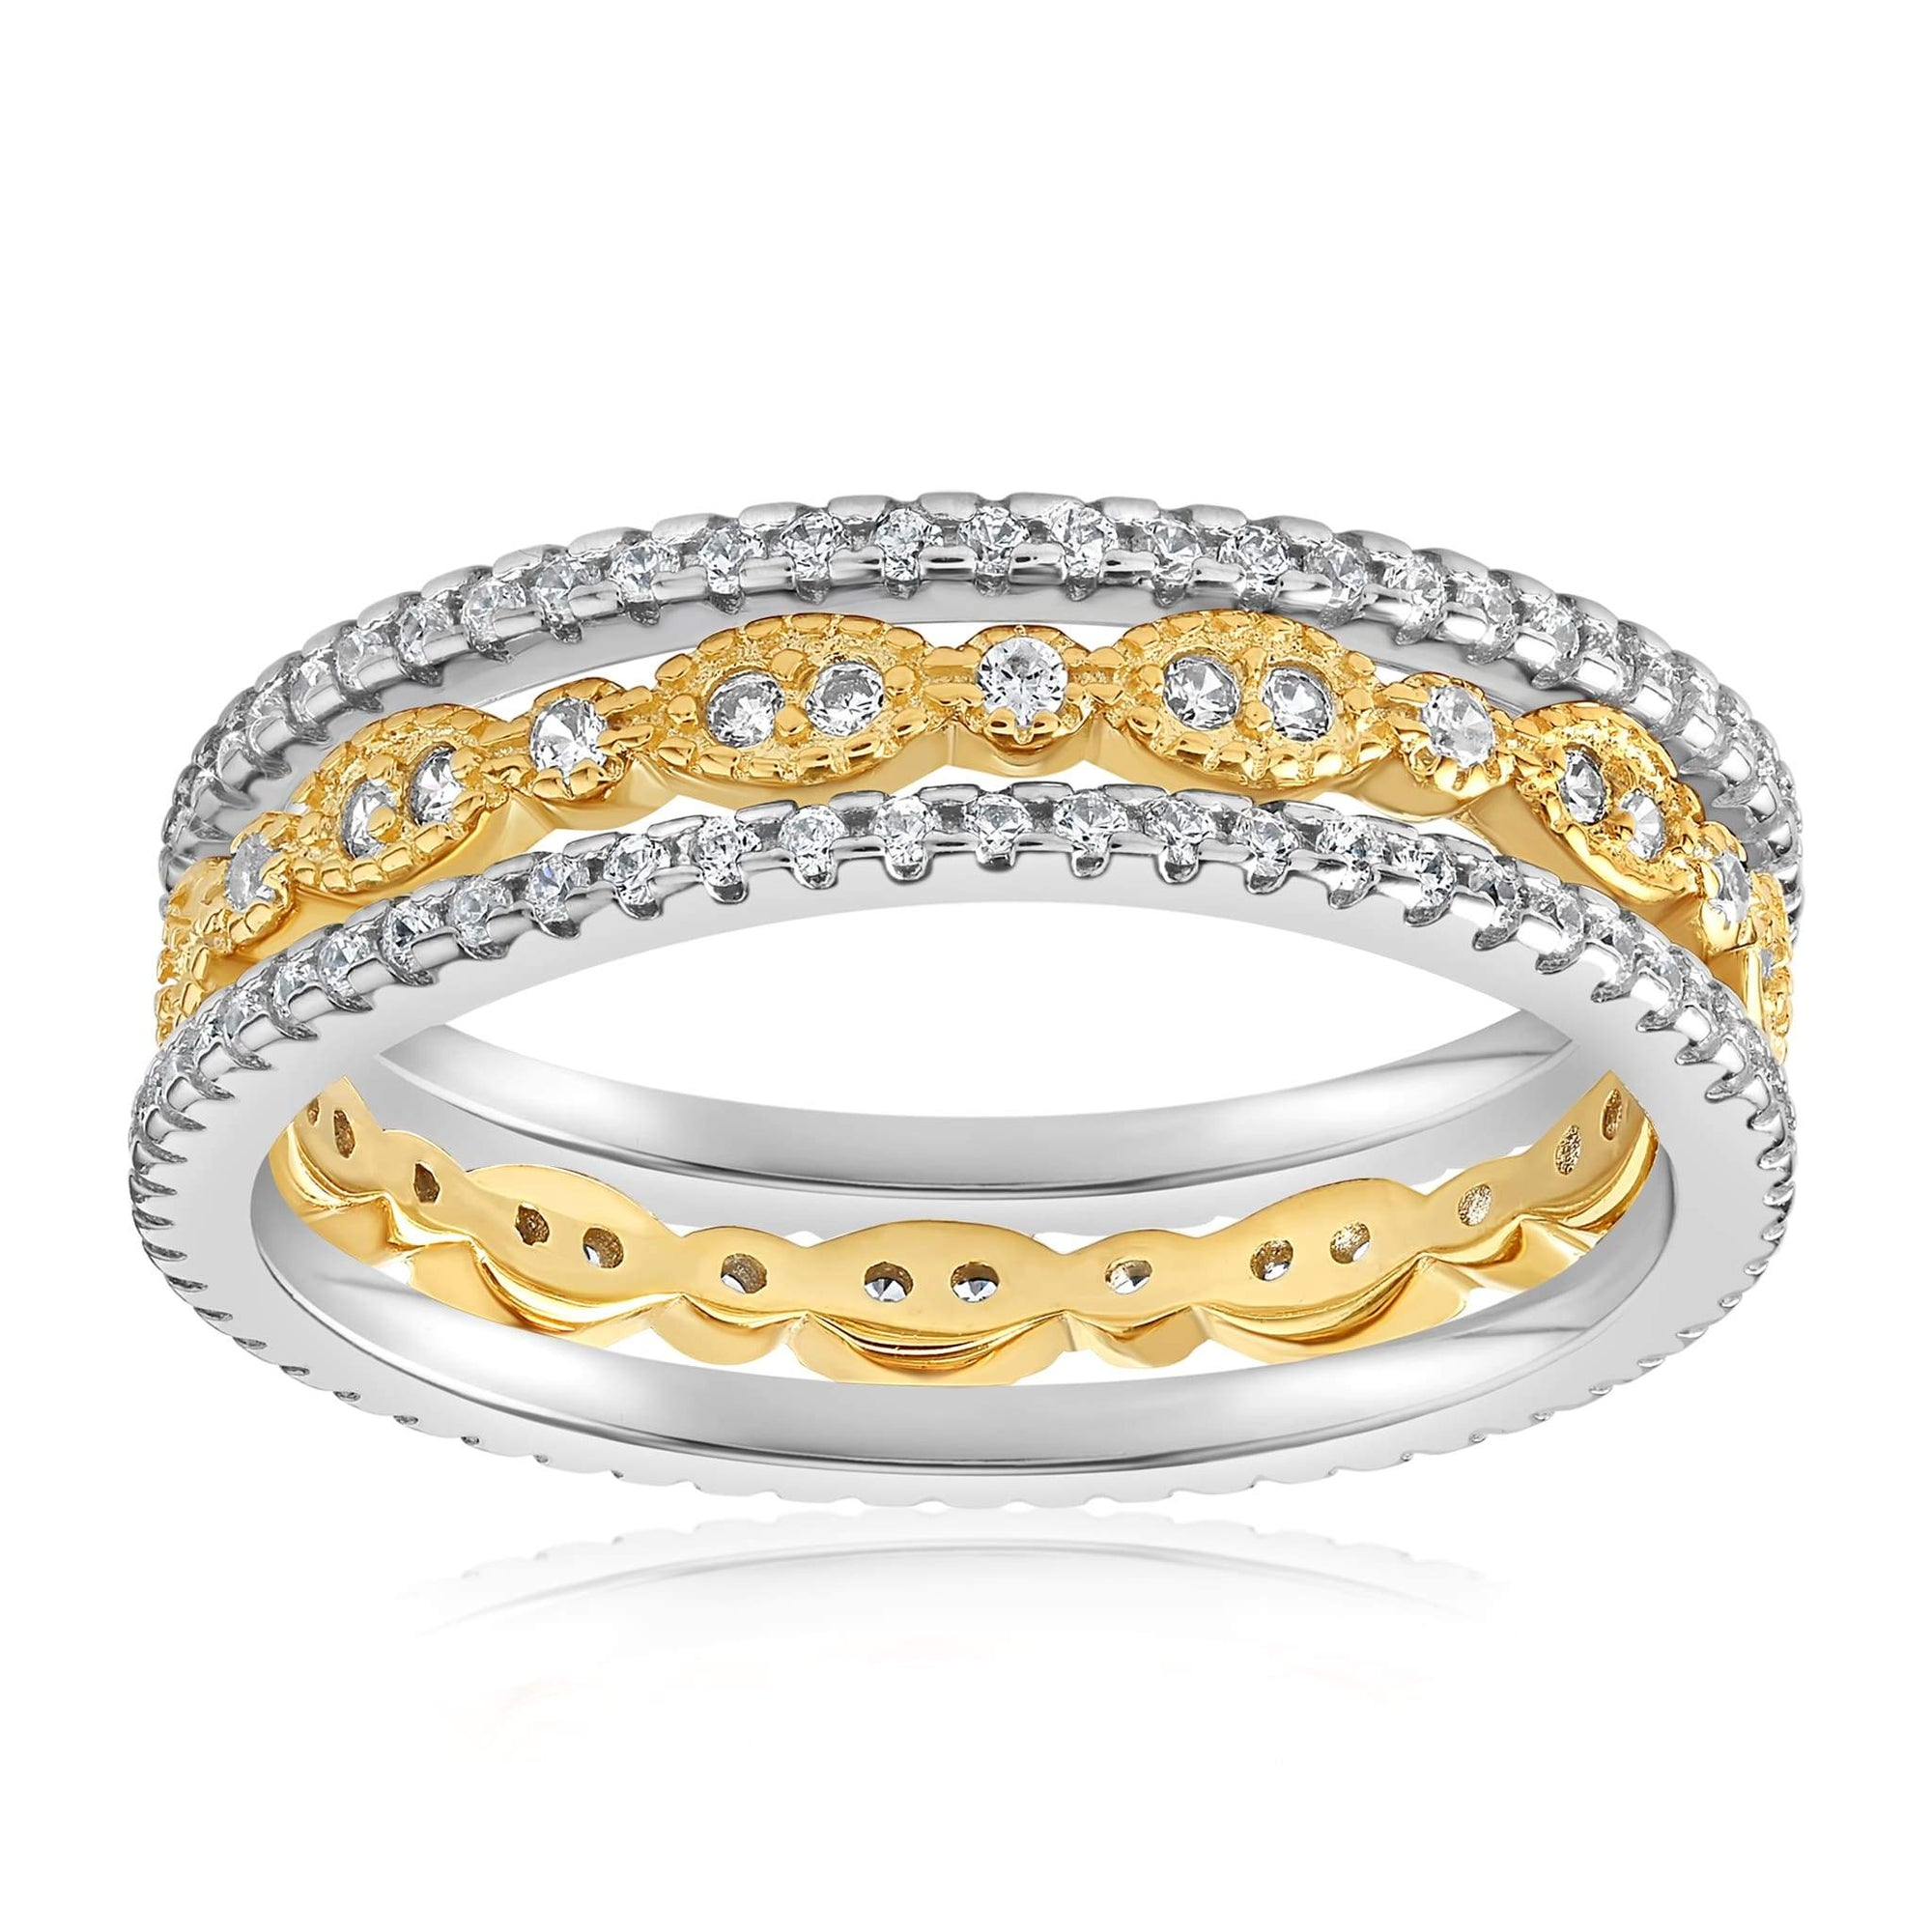 Juliana 3 Ring Set - Front View Facing Up - 18K Yellow Gold Vermeil